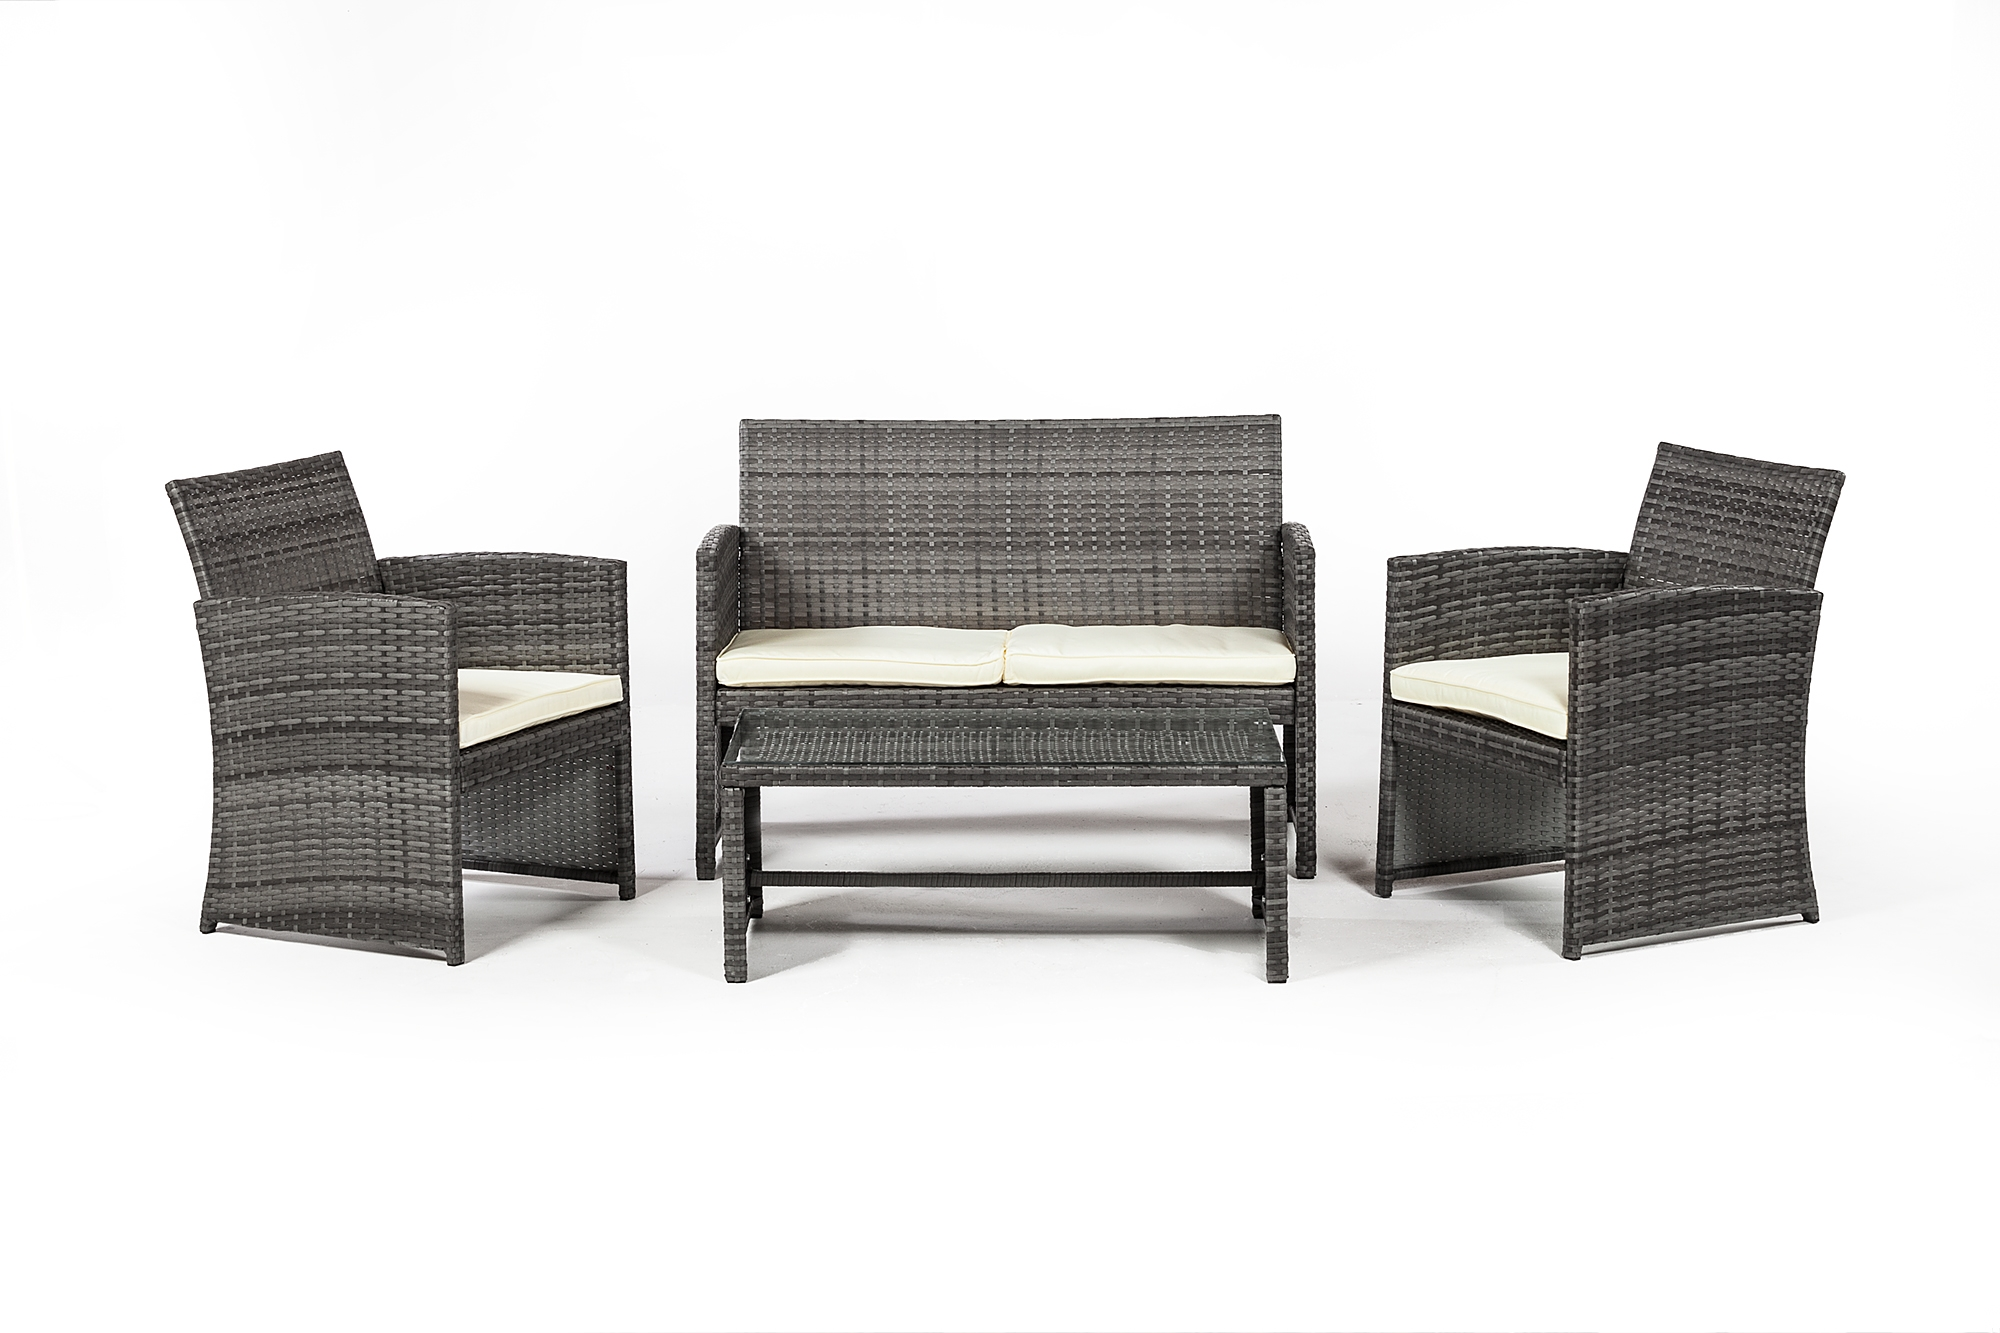 Outdoor furniture 4 piece set in grey rattan the khazana home austin furniture store